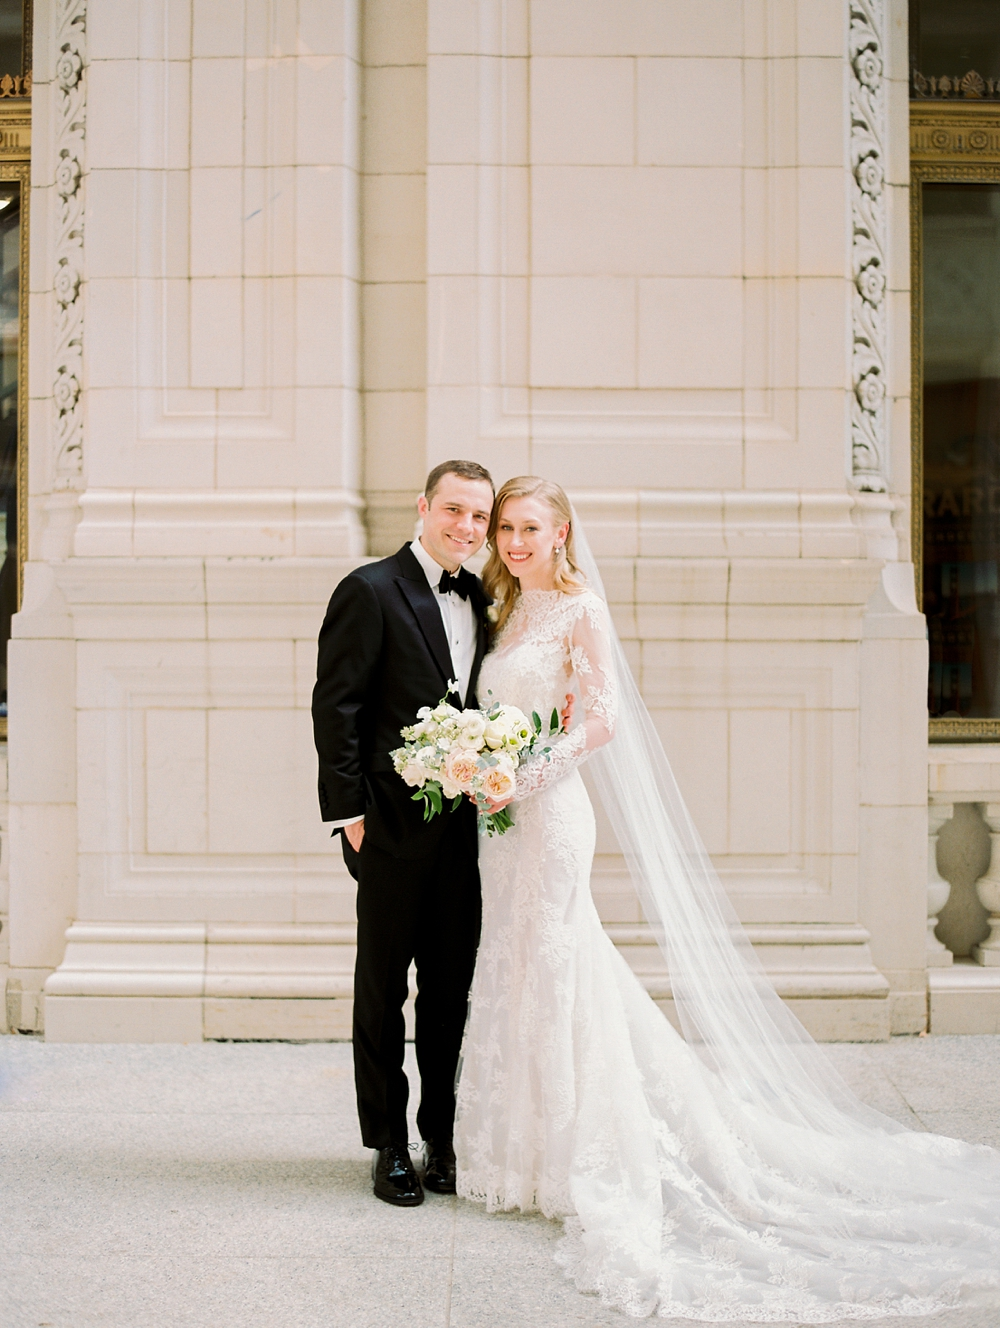 Kristin-La-Voie-Photography-Chicago-Wedding-16